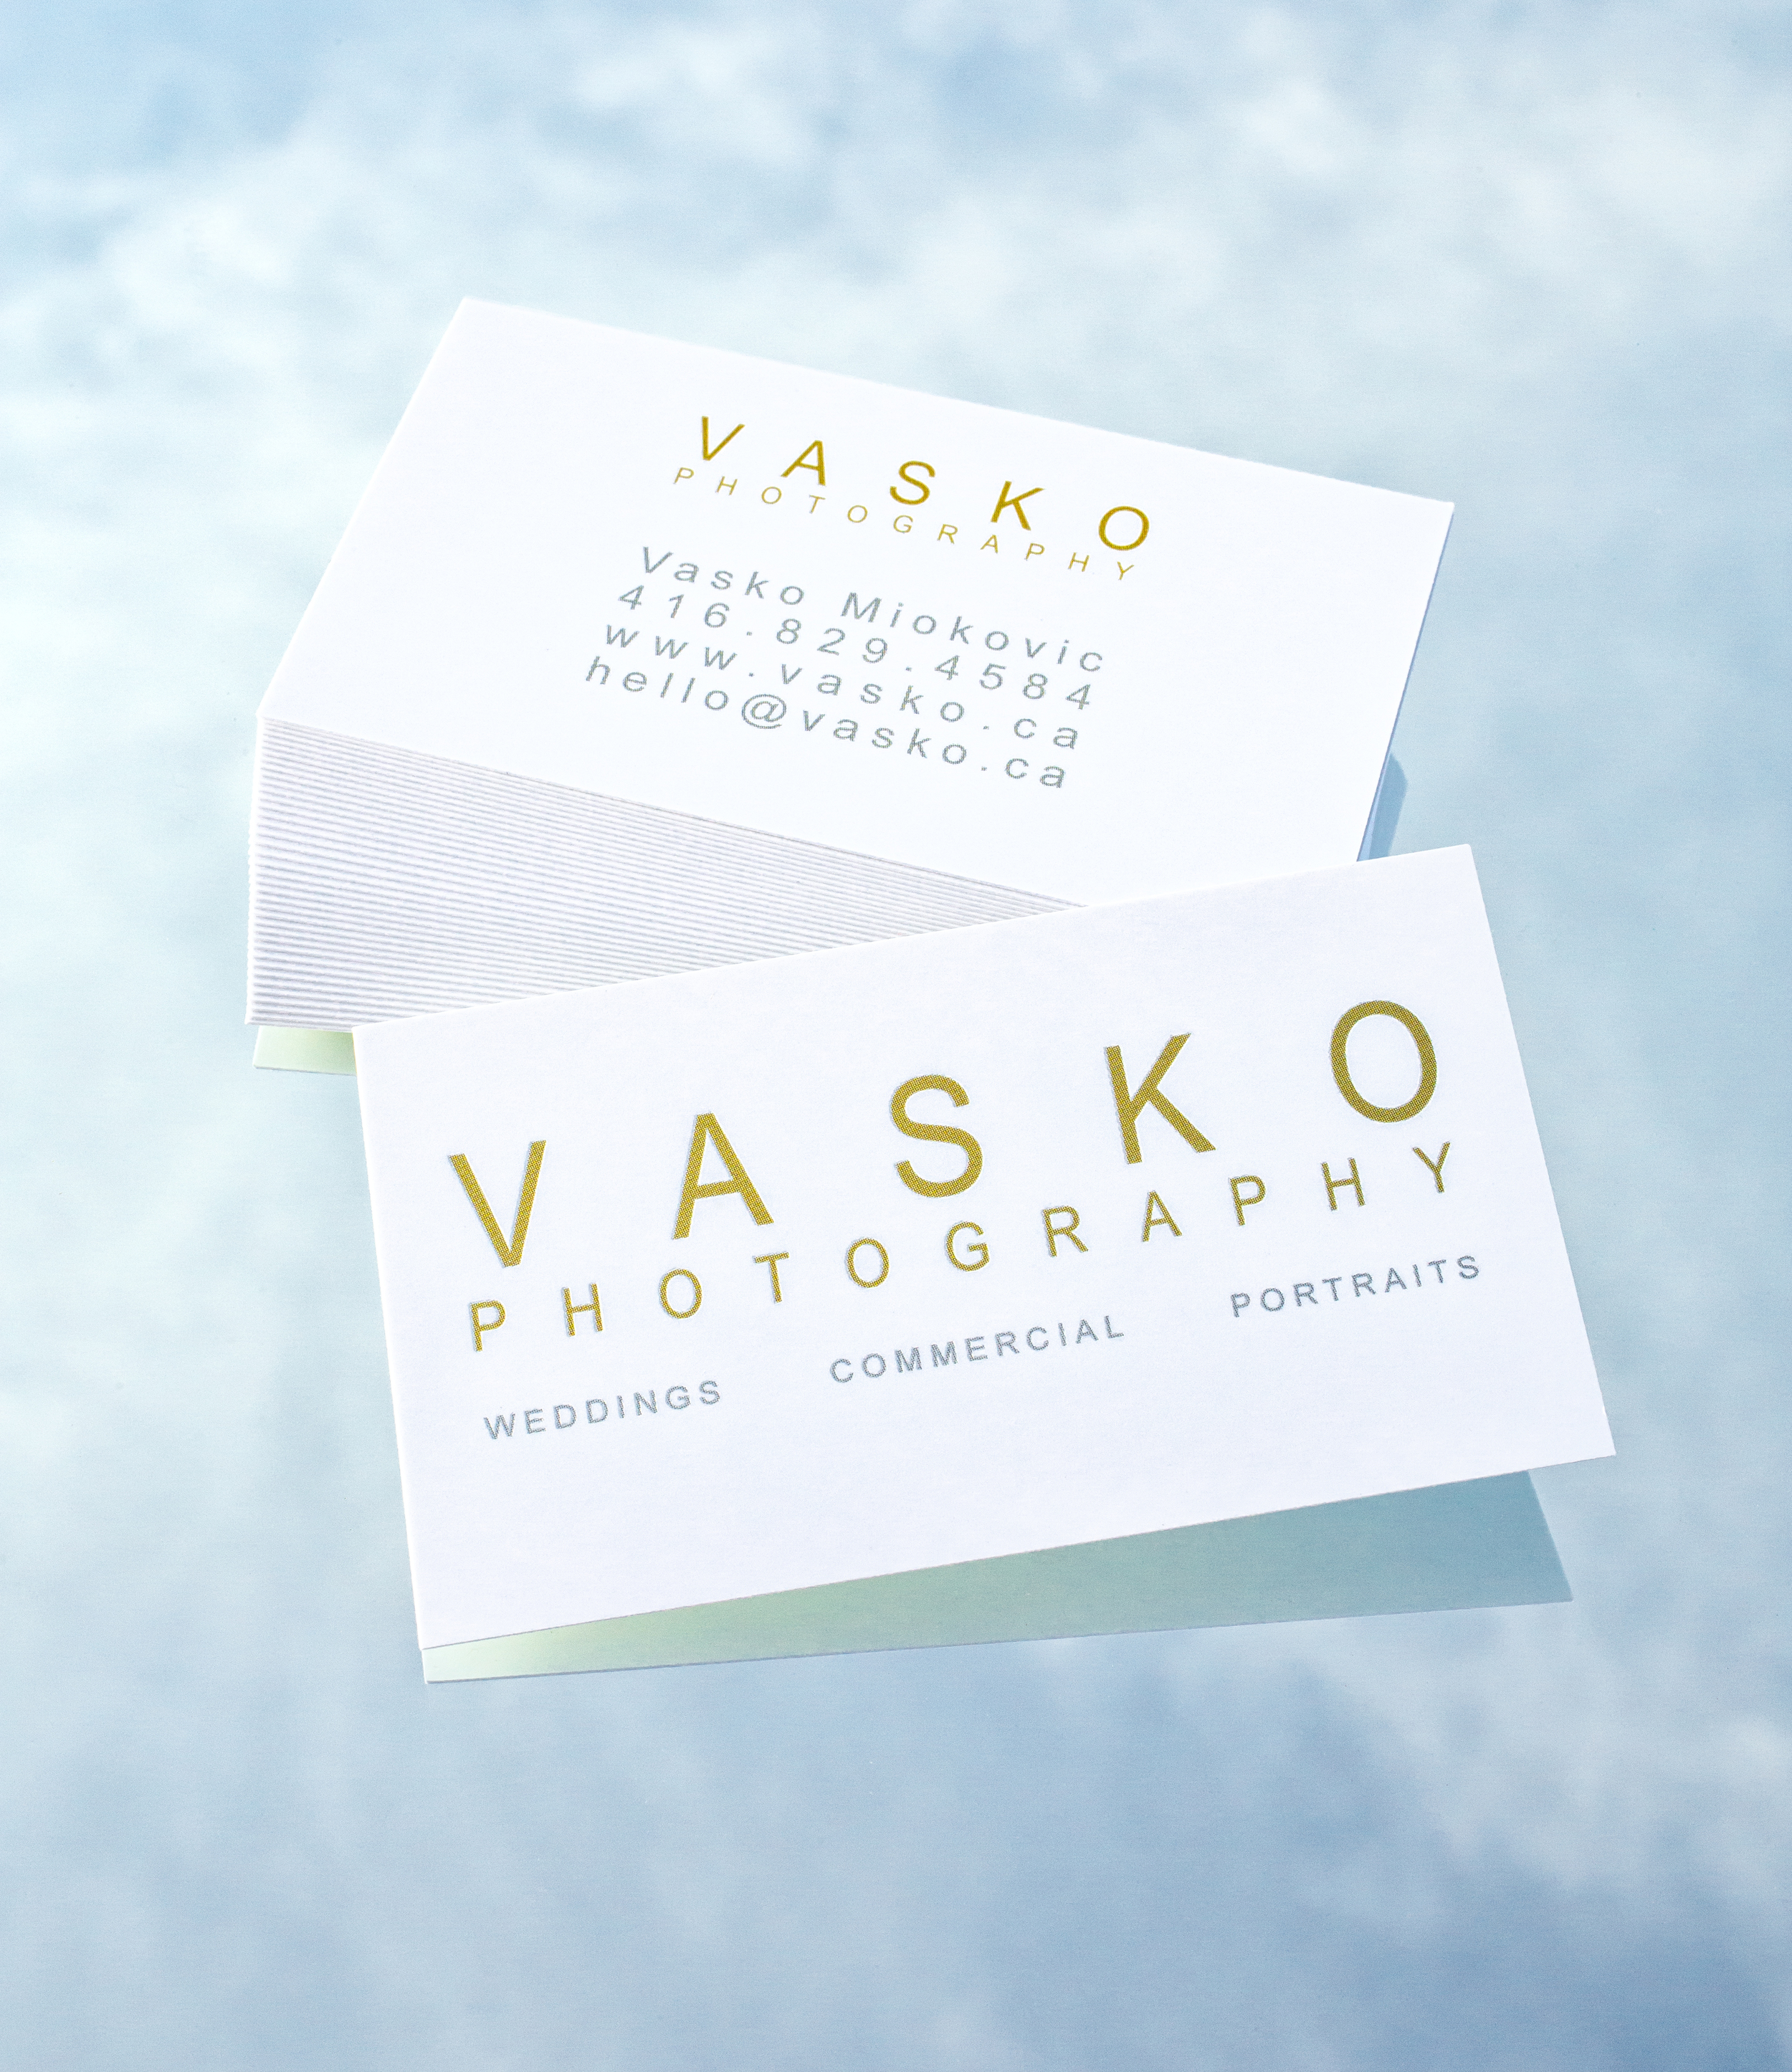 Vasko Photography Toronto Wedding Photographer business cards